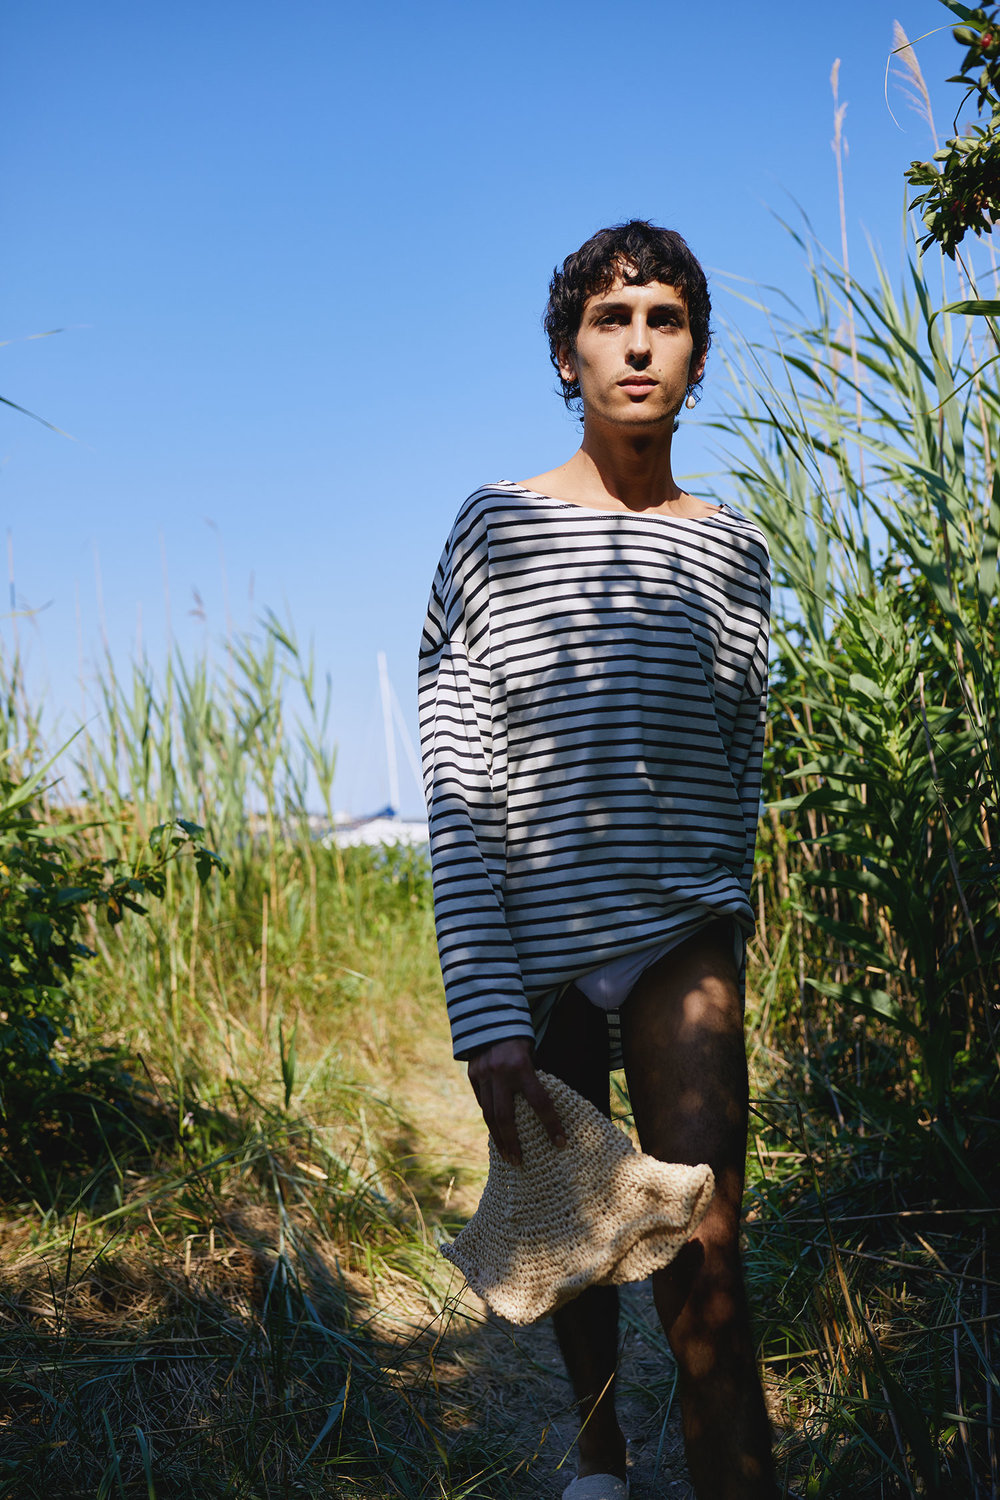 Jordan at Fire Island Wearing One DNA's Striped Boatneck Top